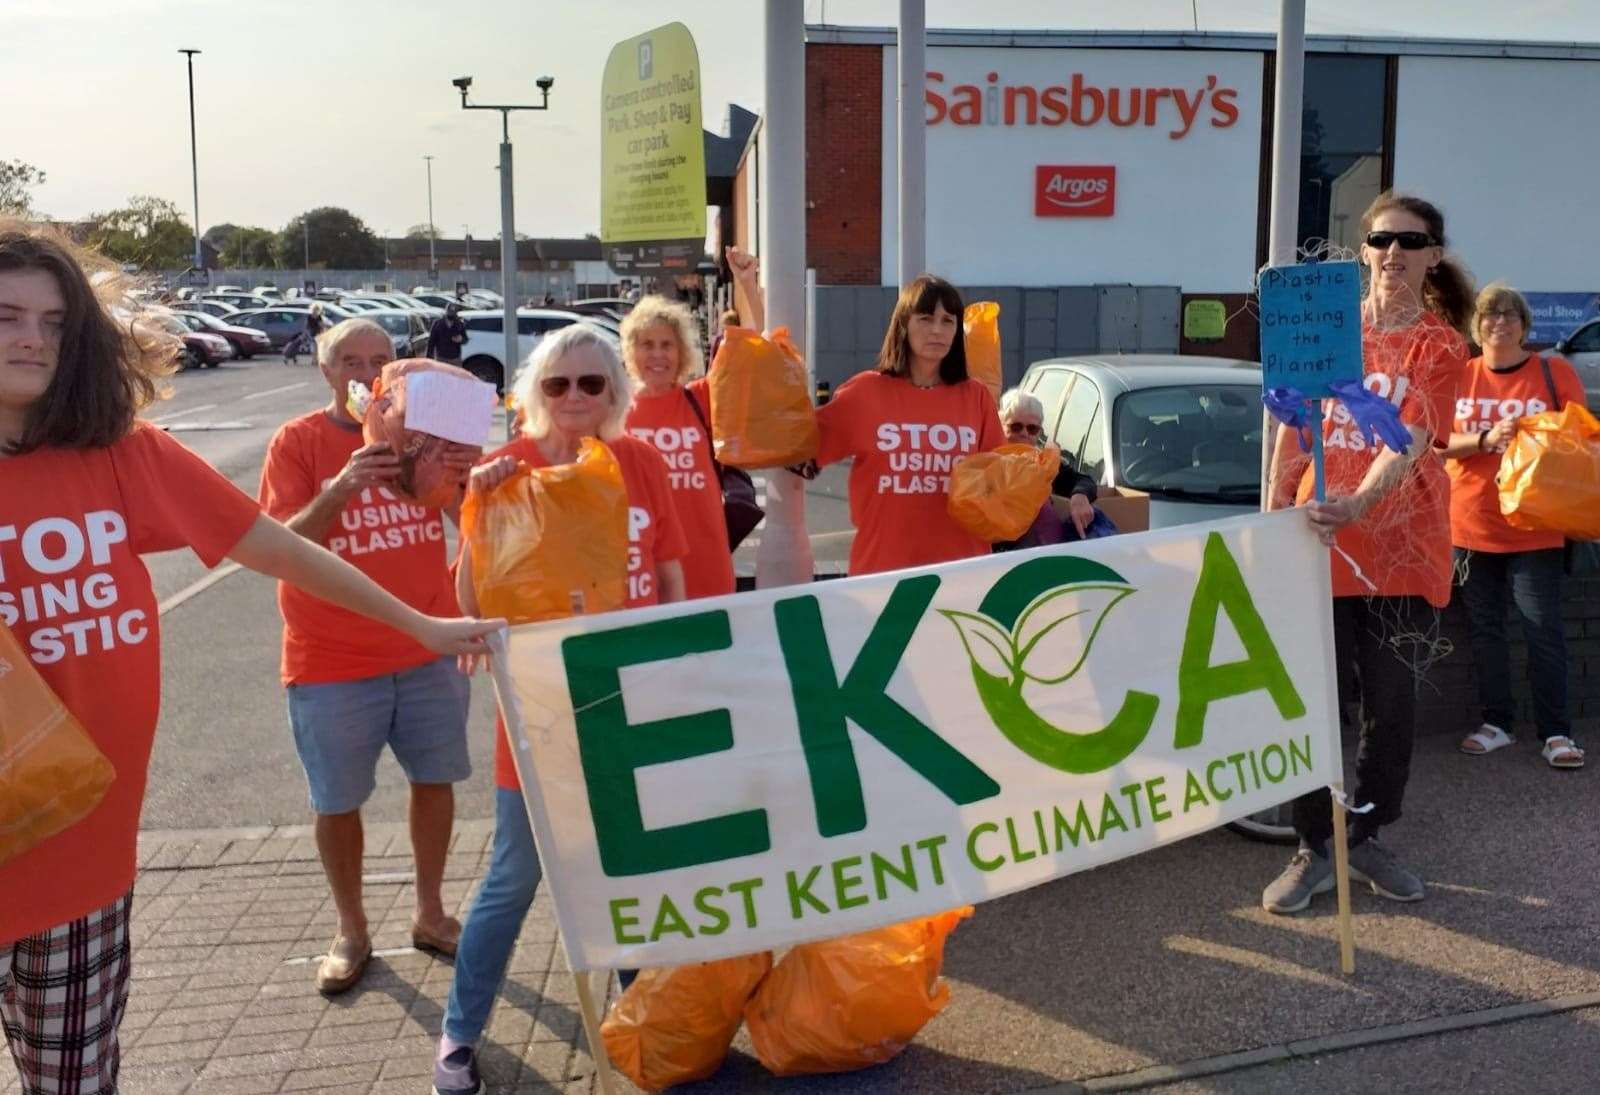 East Kent Climate Action hold a protest outside Sainsbury's in Deal Picture: Helen O'Brien